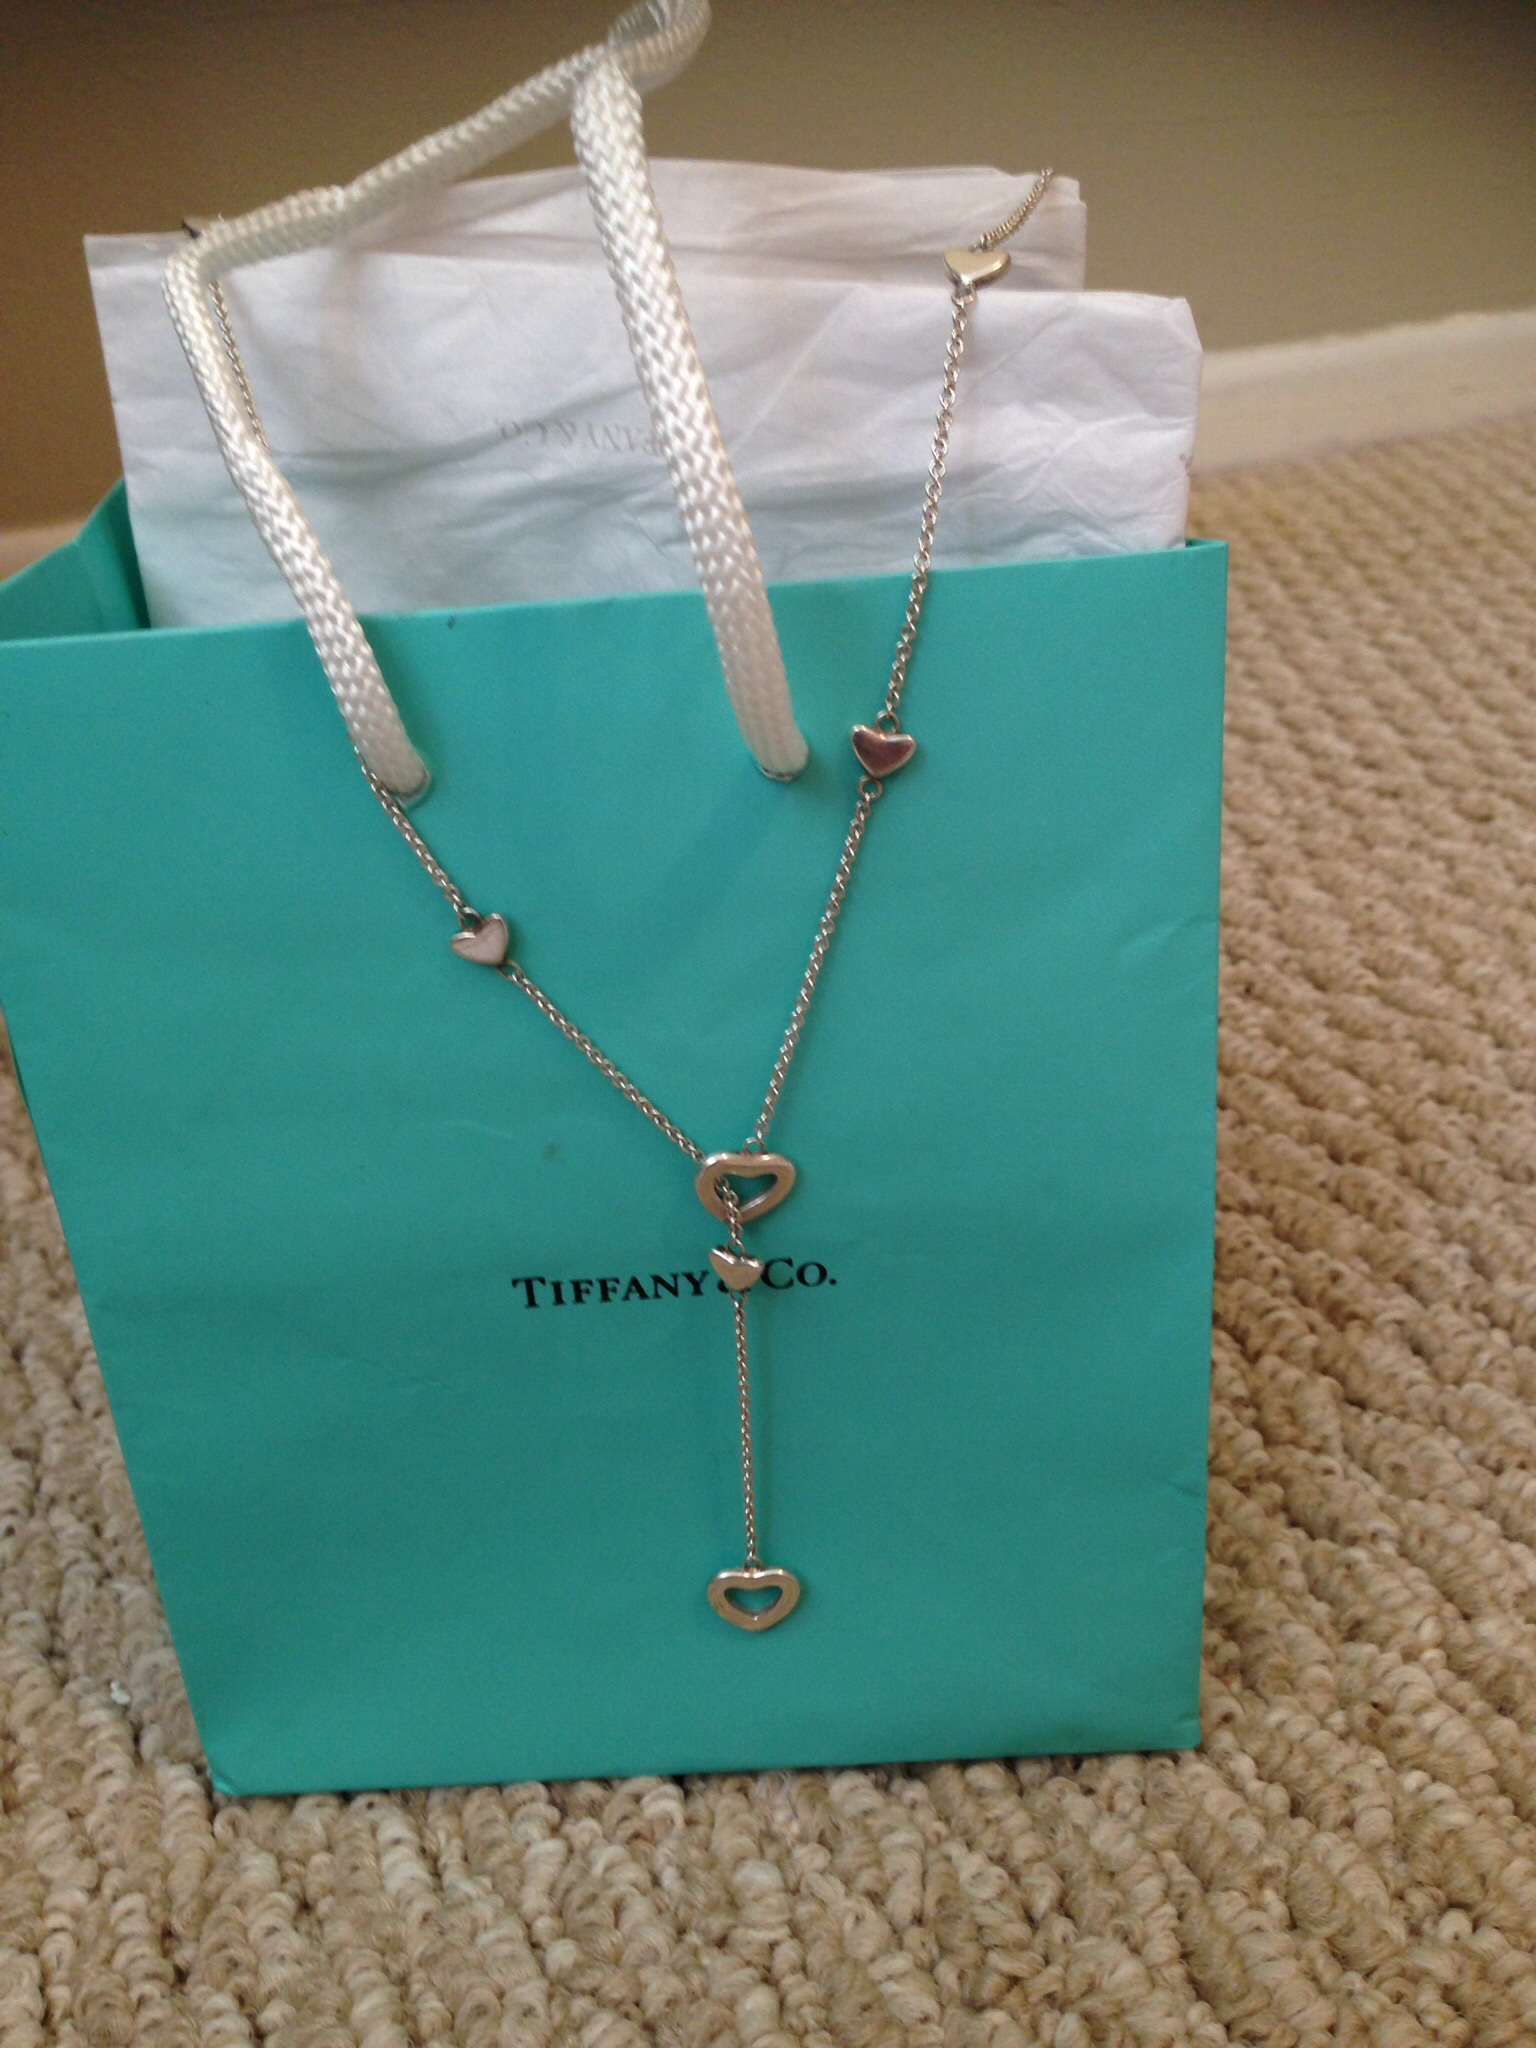 4fbcf480a34dd Authentic Tiffany & Co. Lariat Necklace from Kismet Fashions